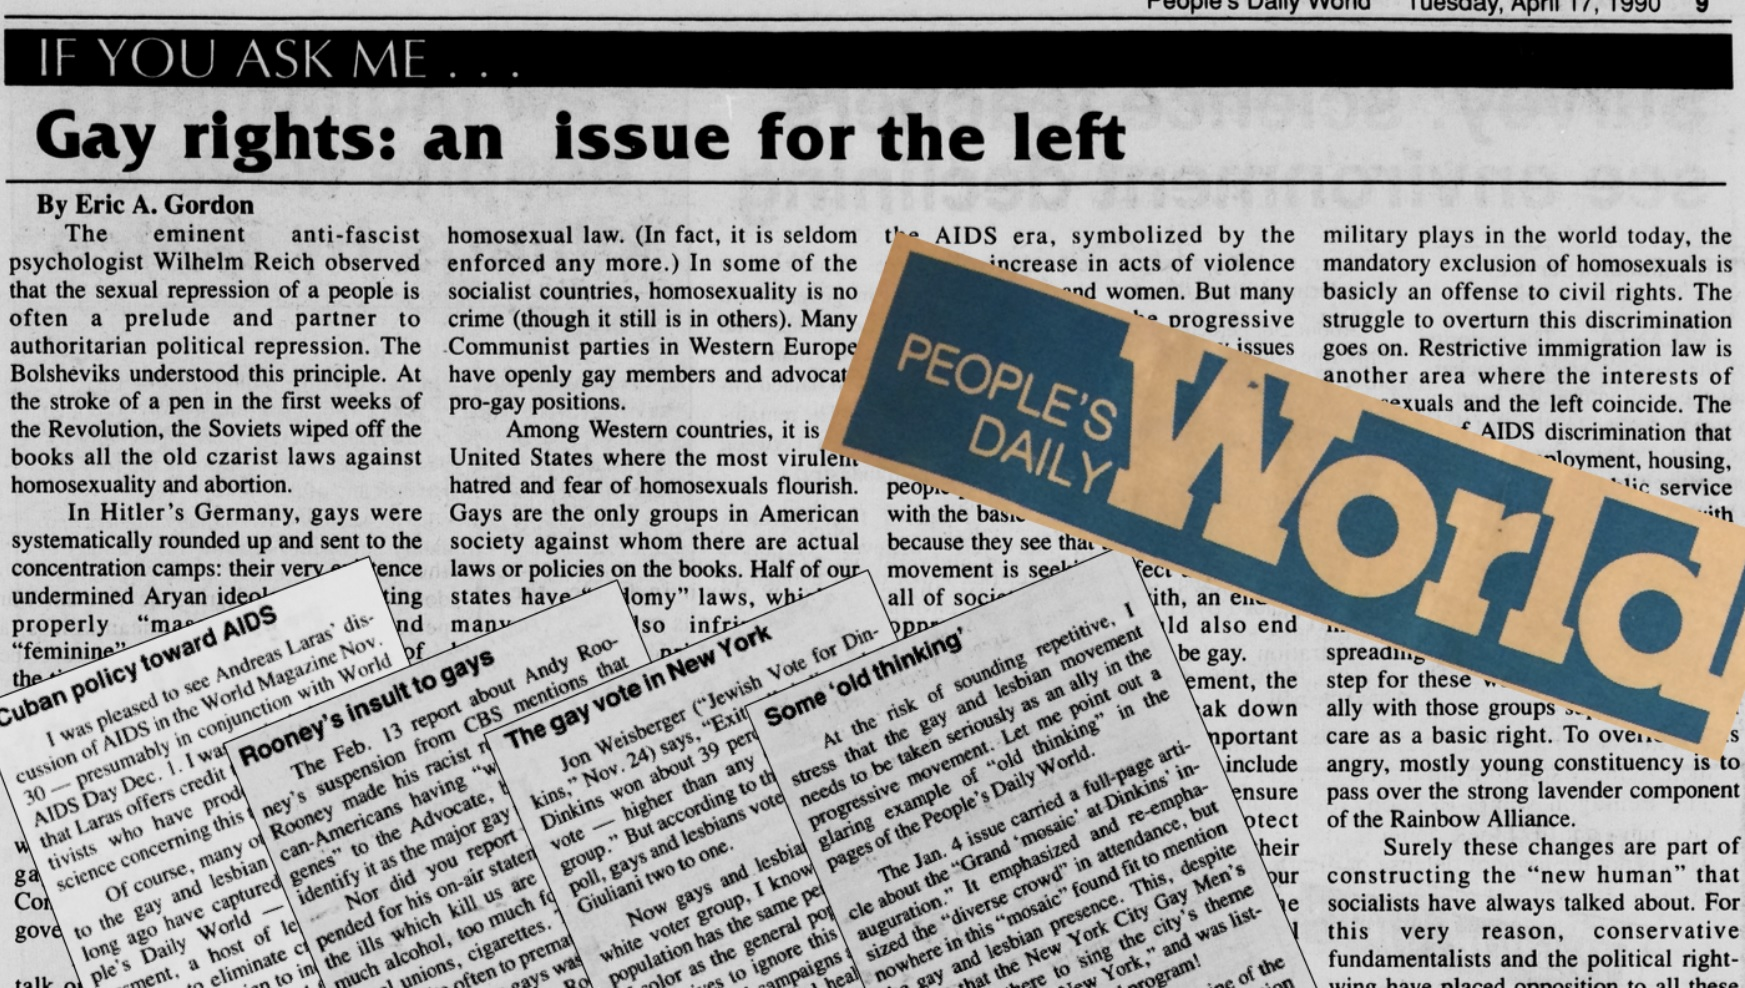 Gay rights in the Communist press: Recollections of a seminal article